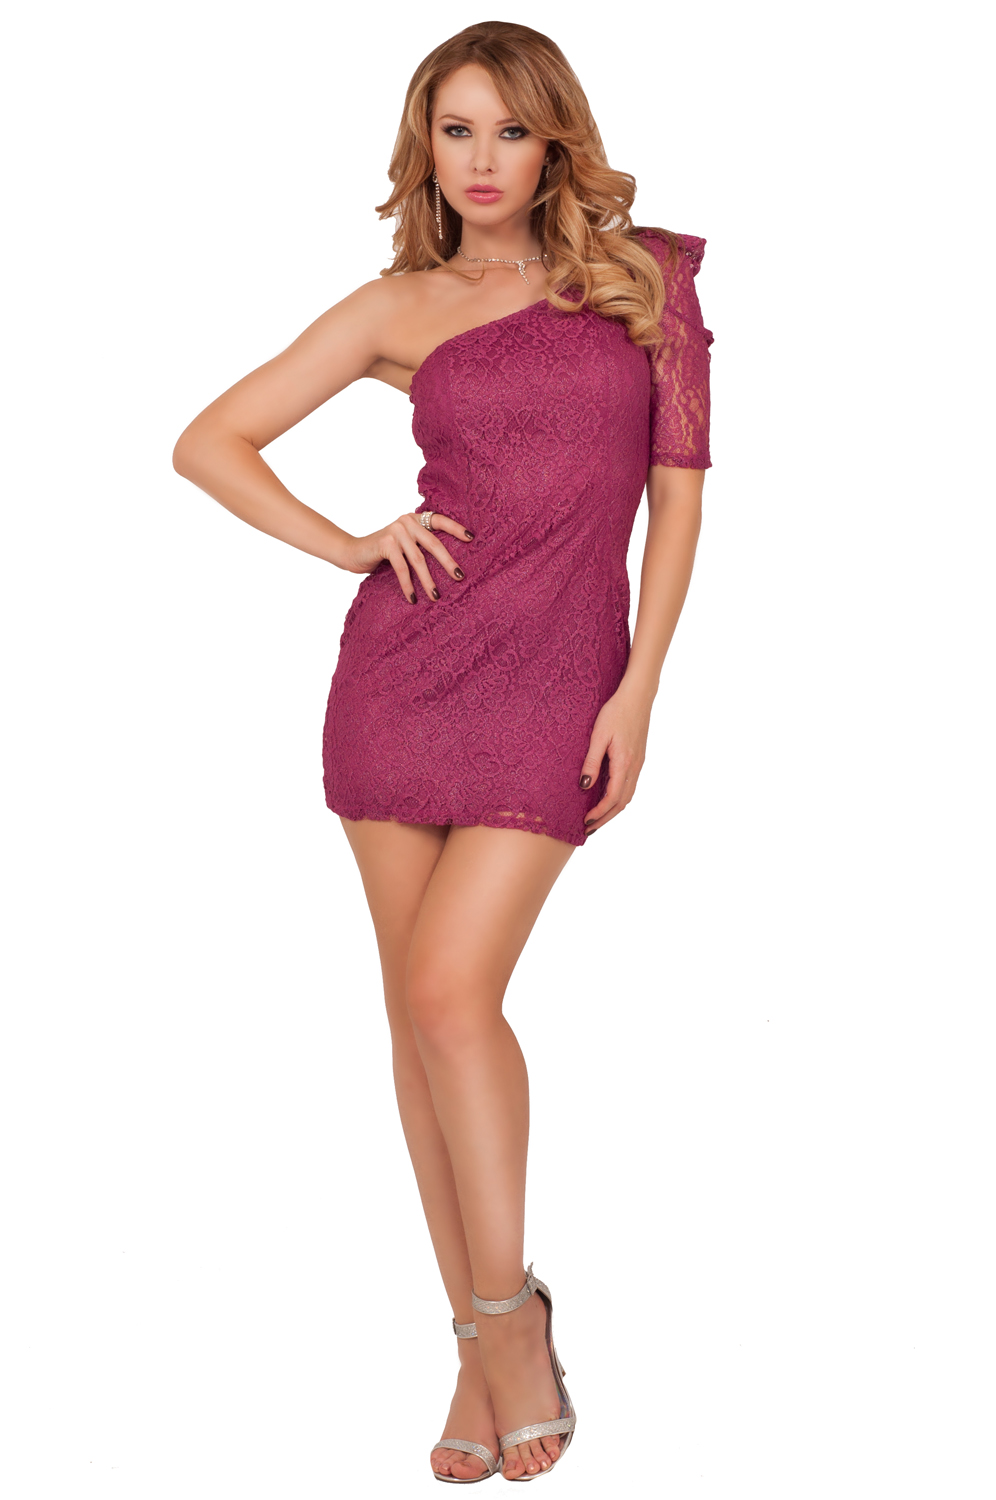 Sexy Classy Cocktail Dresses